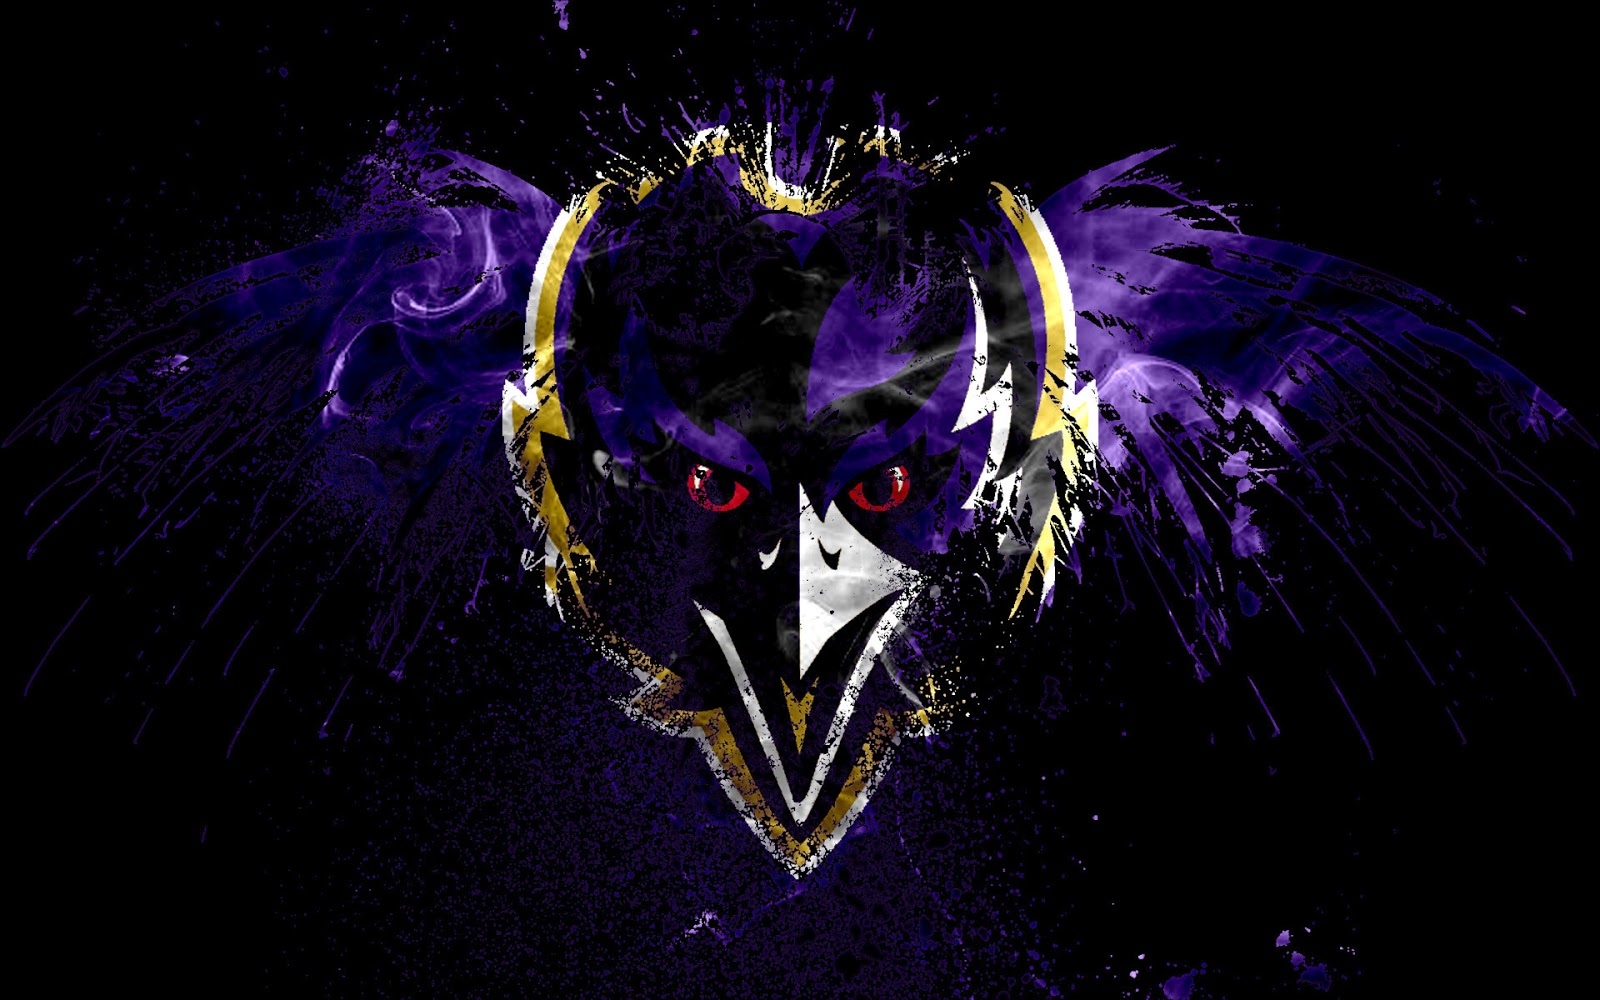 Best 32 Ravens Wallpaper on HipWallpaper Ravens Wallpaper 1600x1000